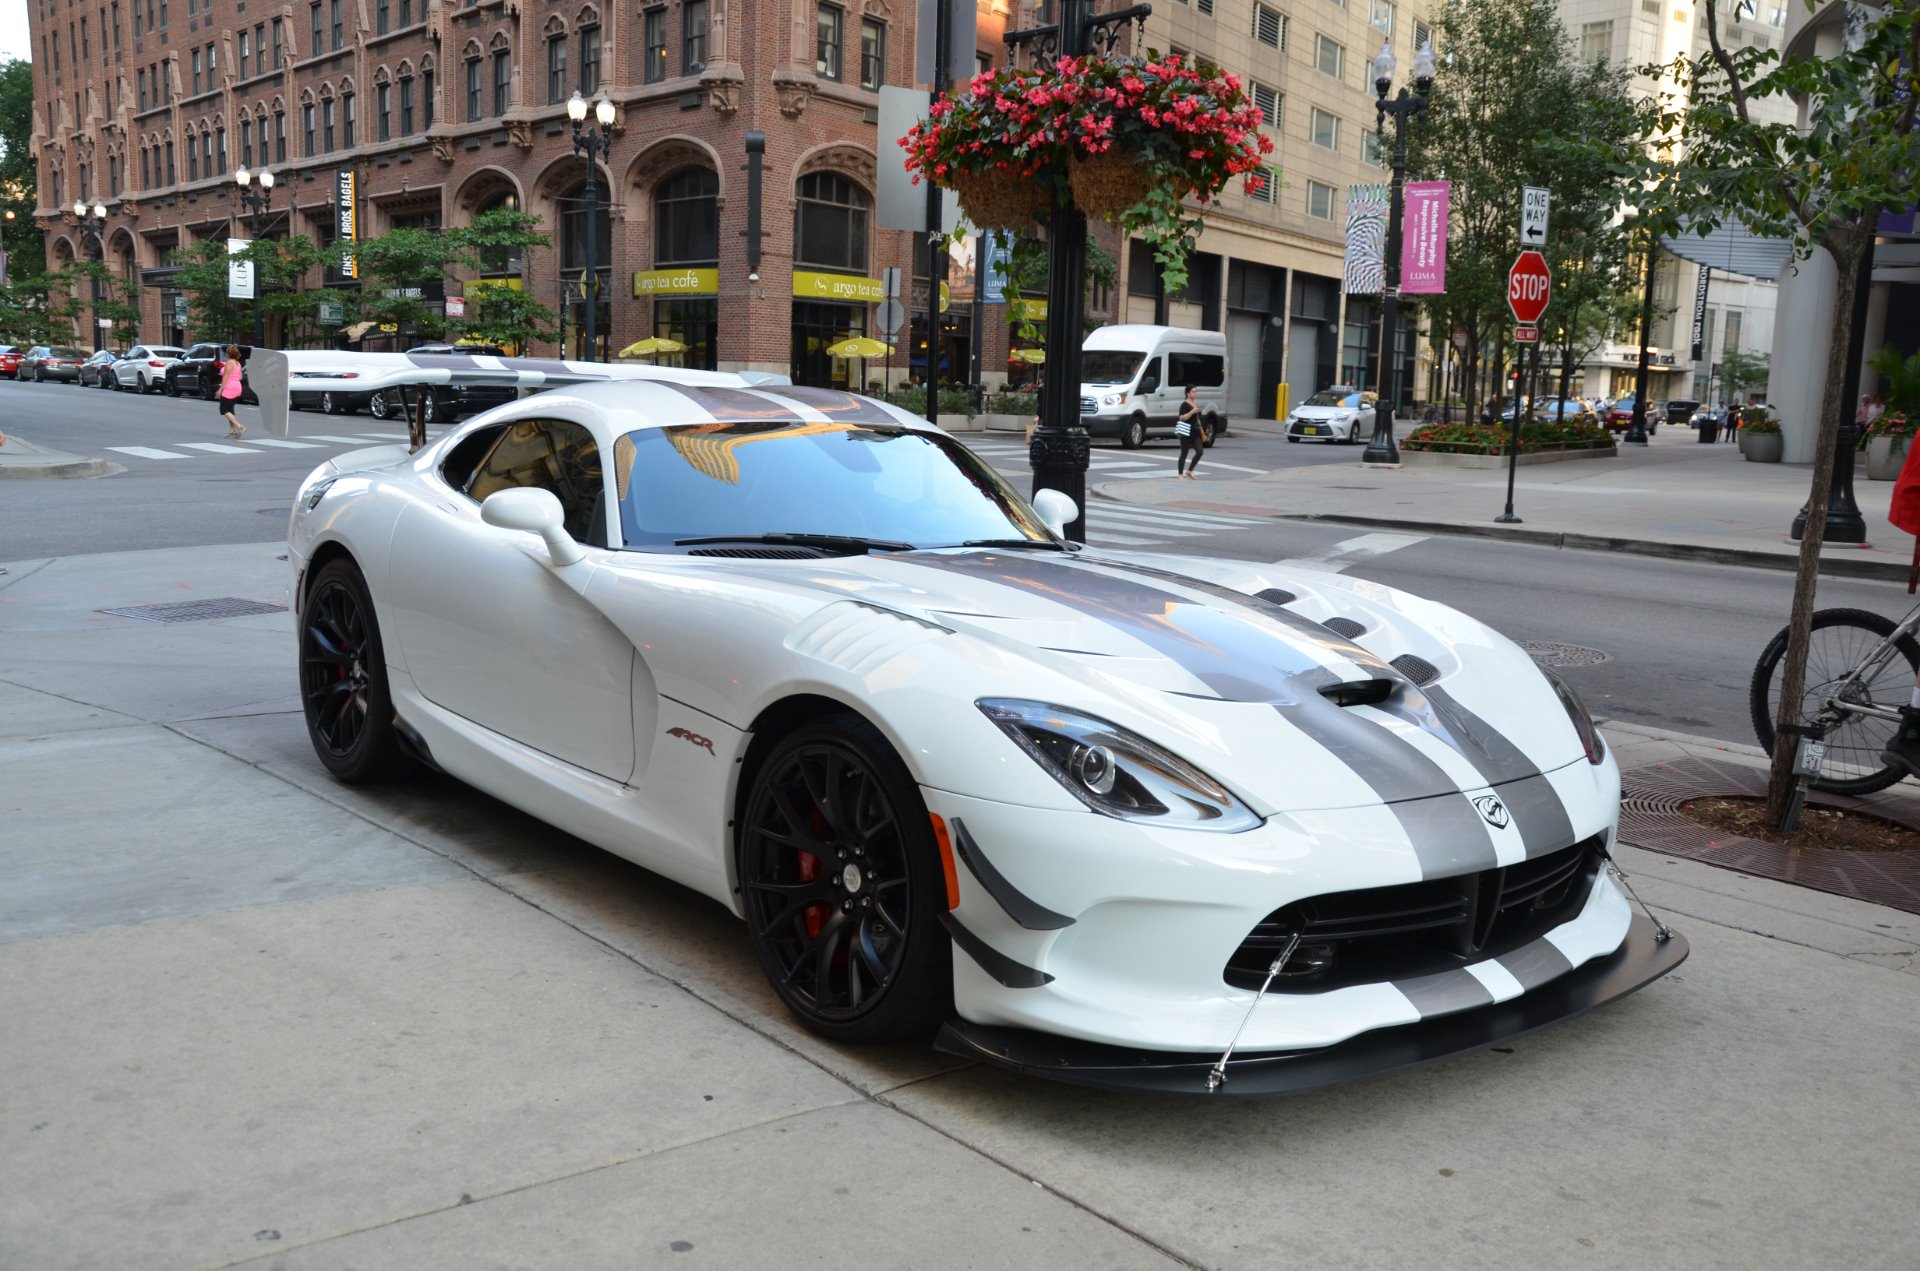 2016 Dodge Viper ACR Stock for sale near Chicago IL